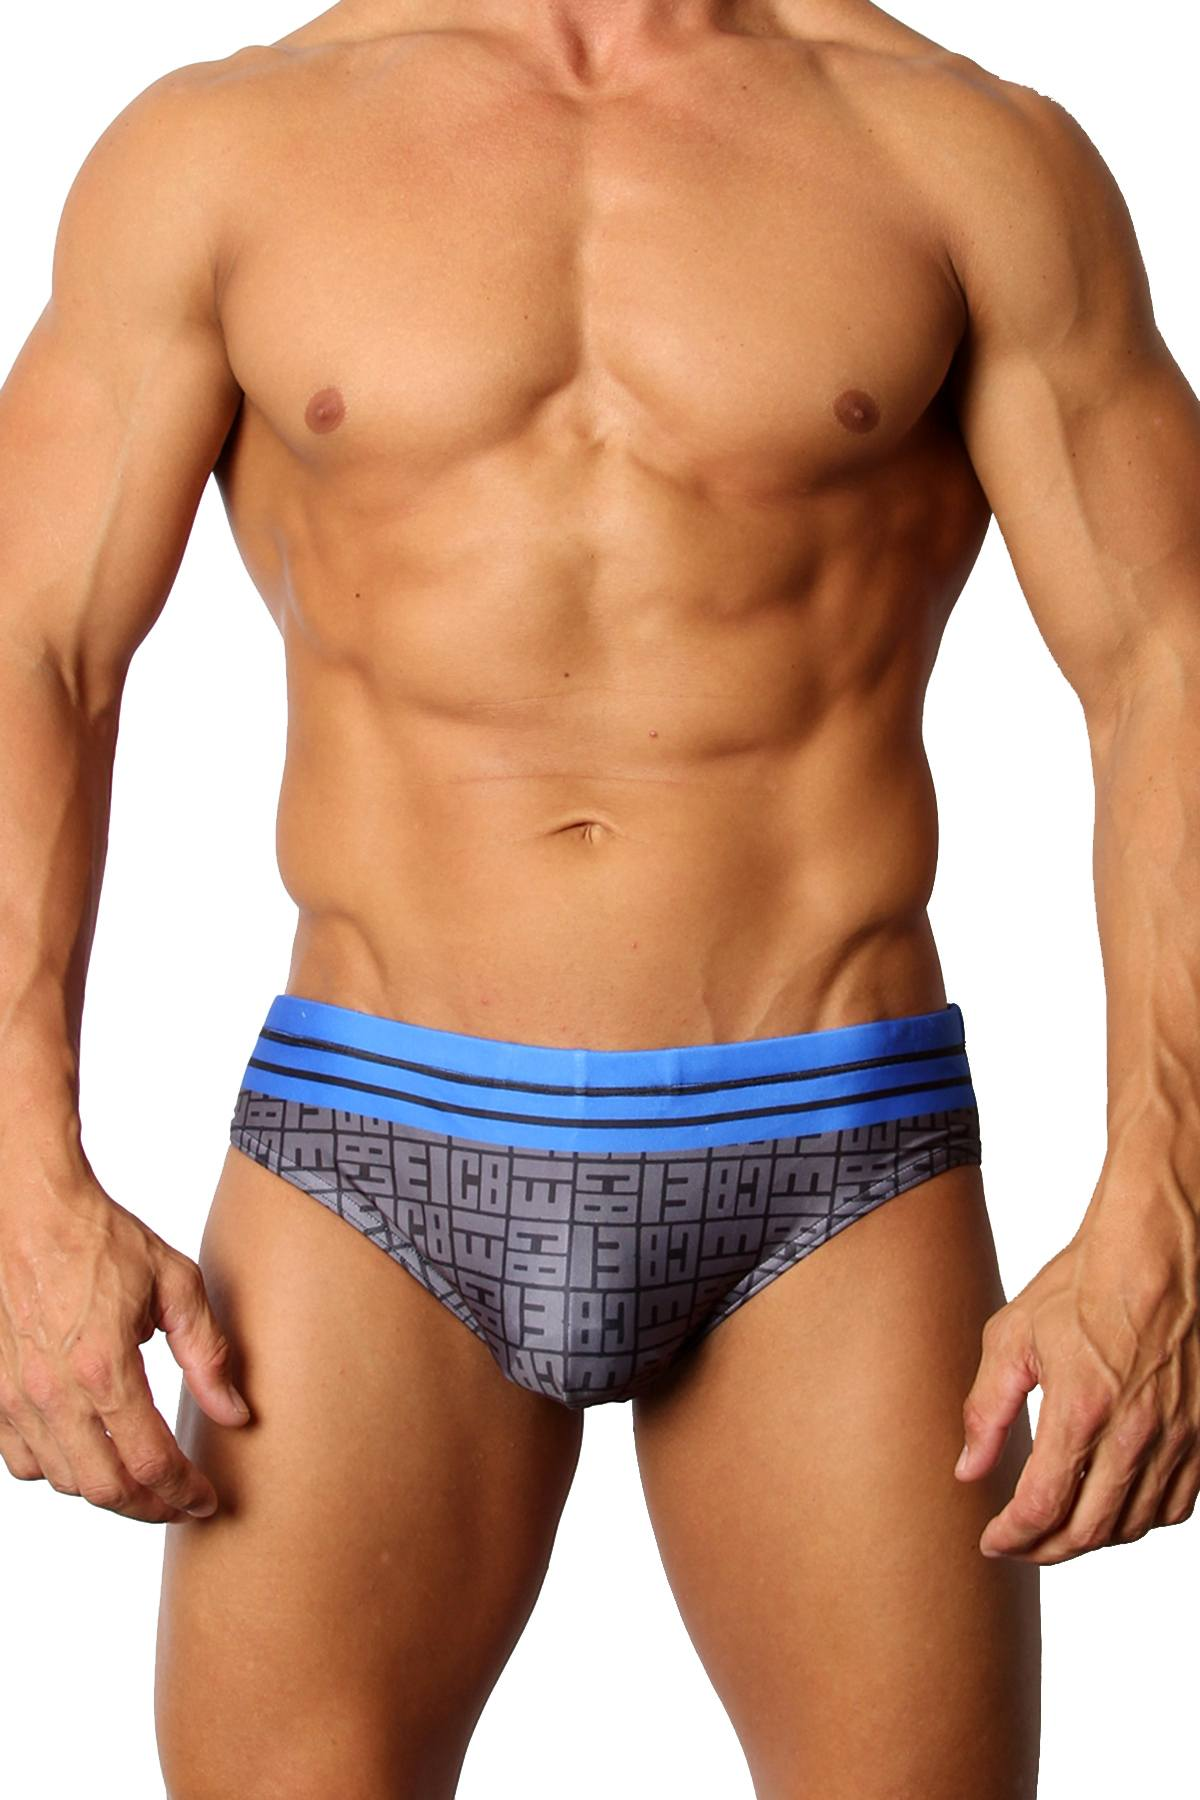 CellBlock 13 Icon Swim Brief in Blue